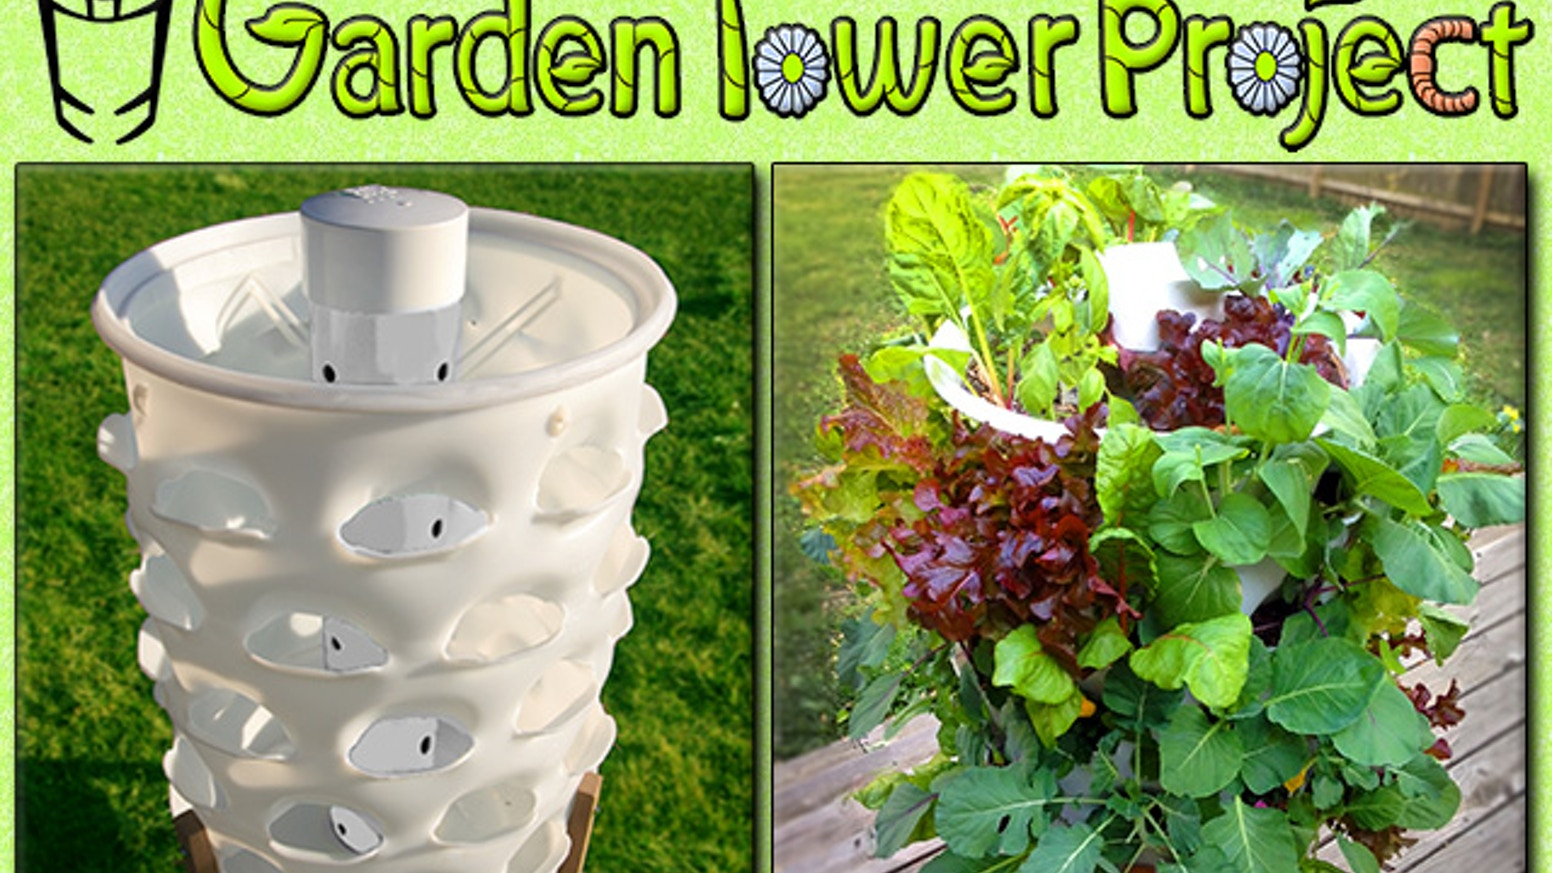 garden tower composting 50 plants fresh food anywhere - Garden Tower Project